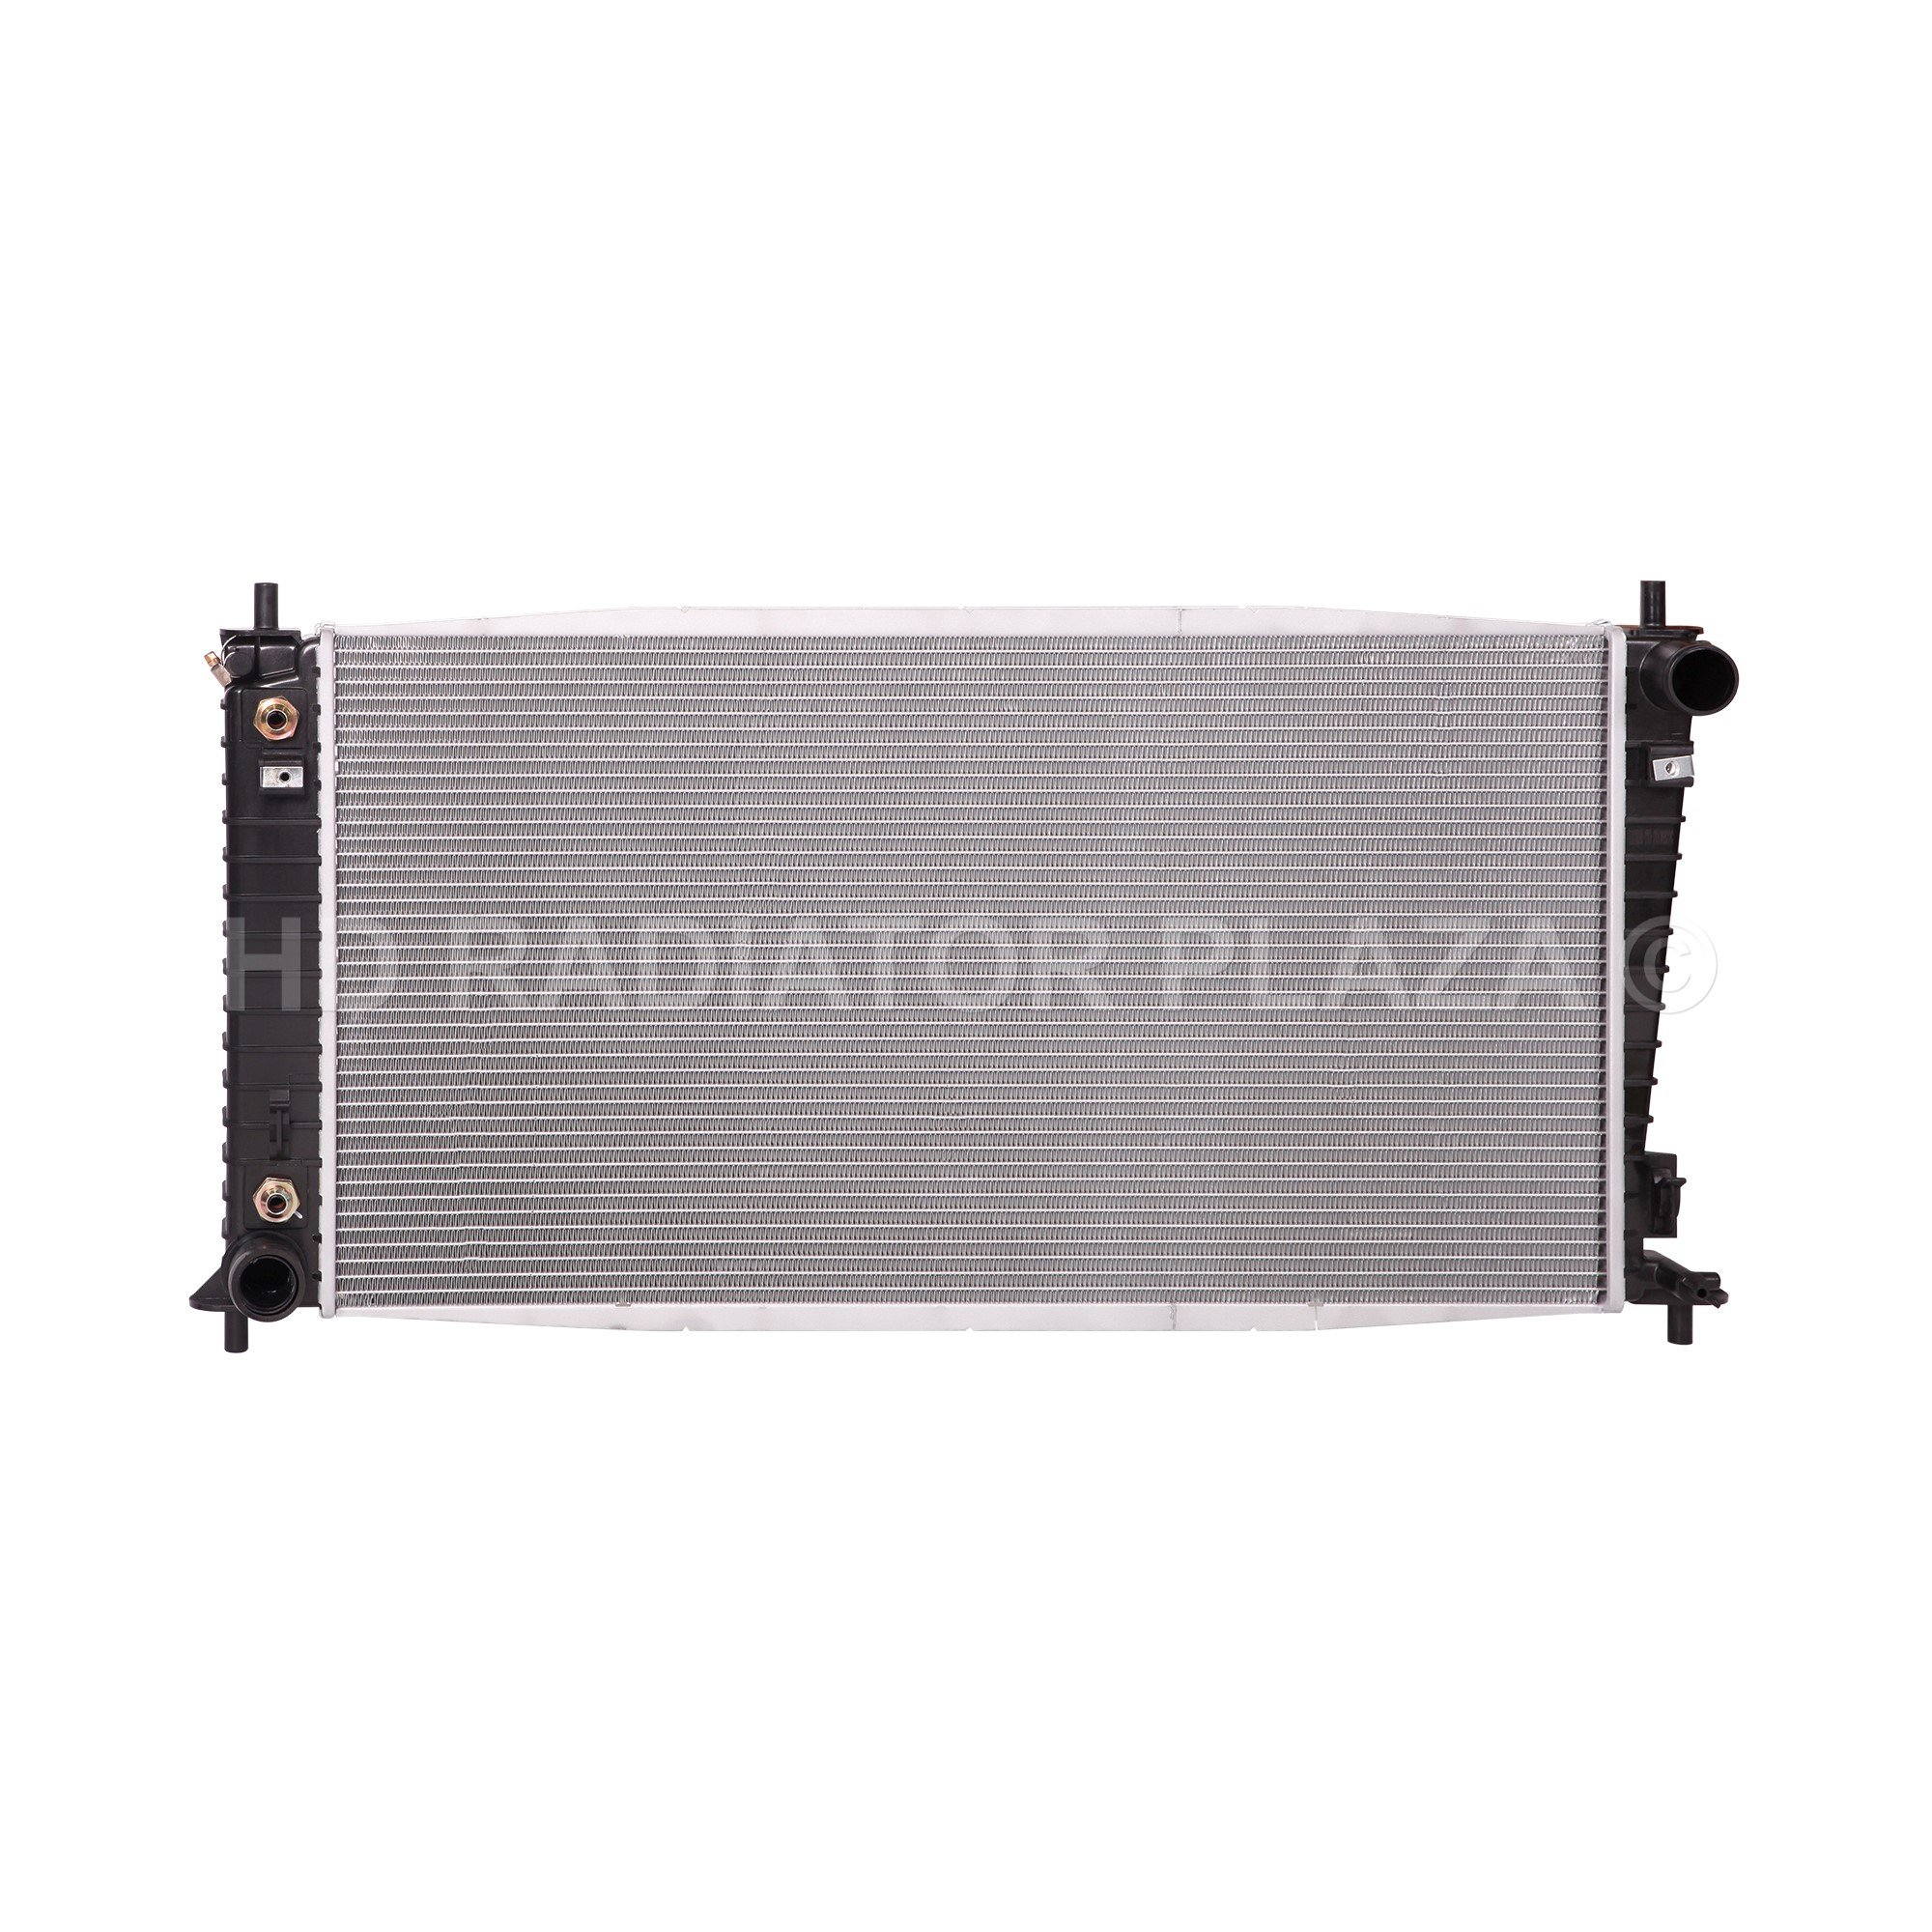 Radiator for 05-08 Ford Expedition